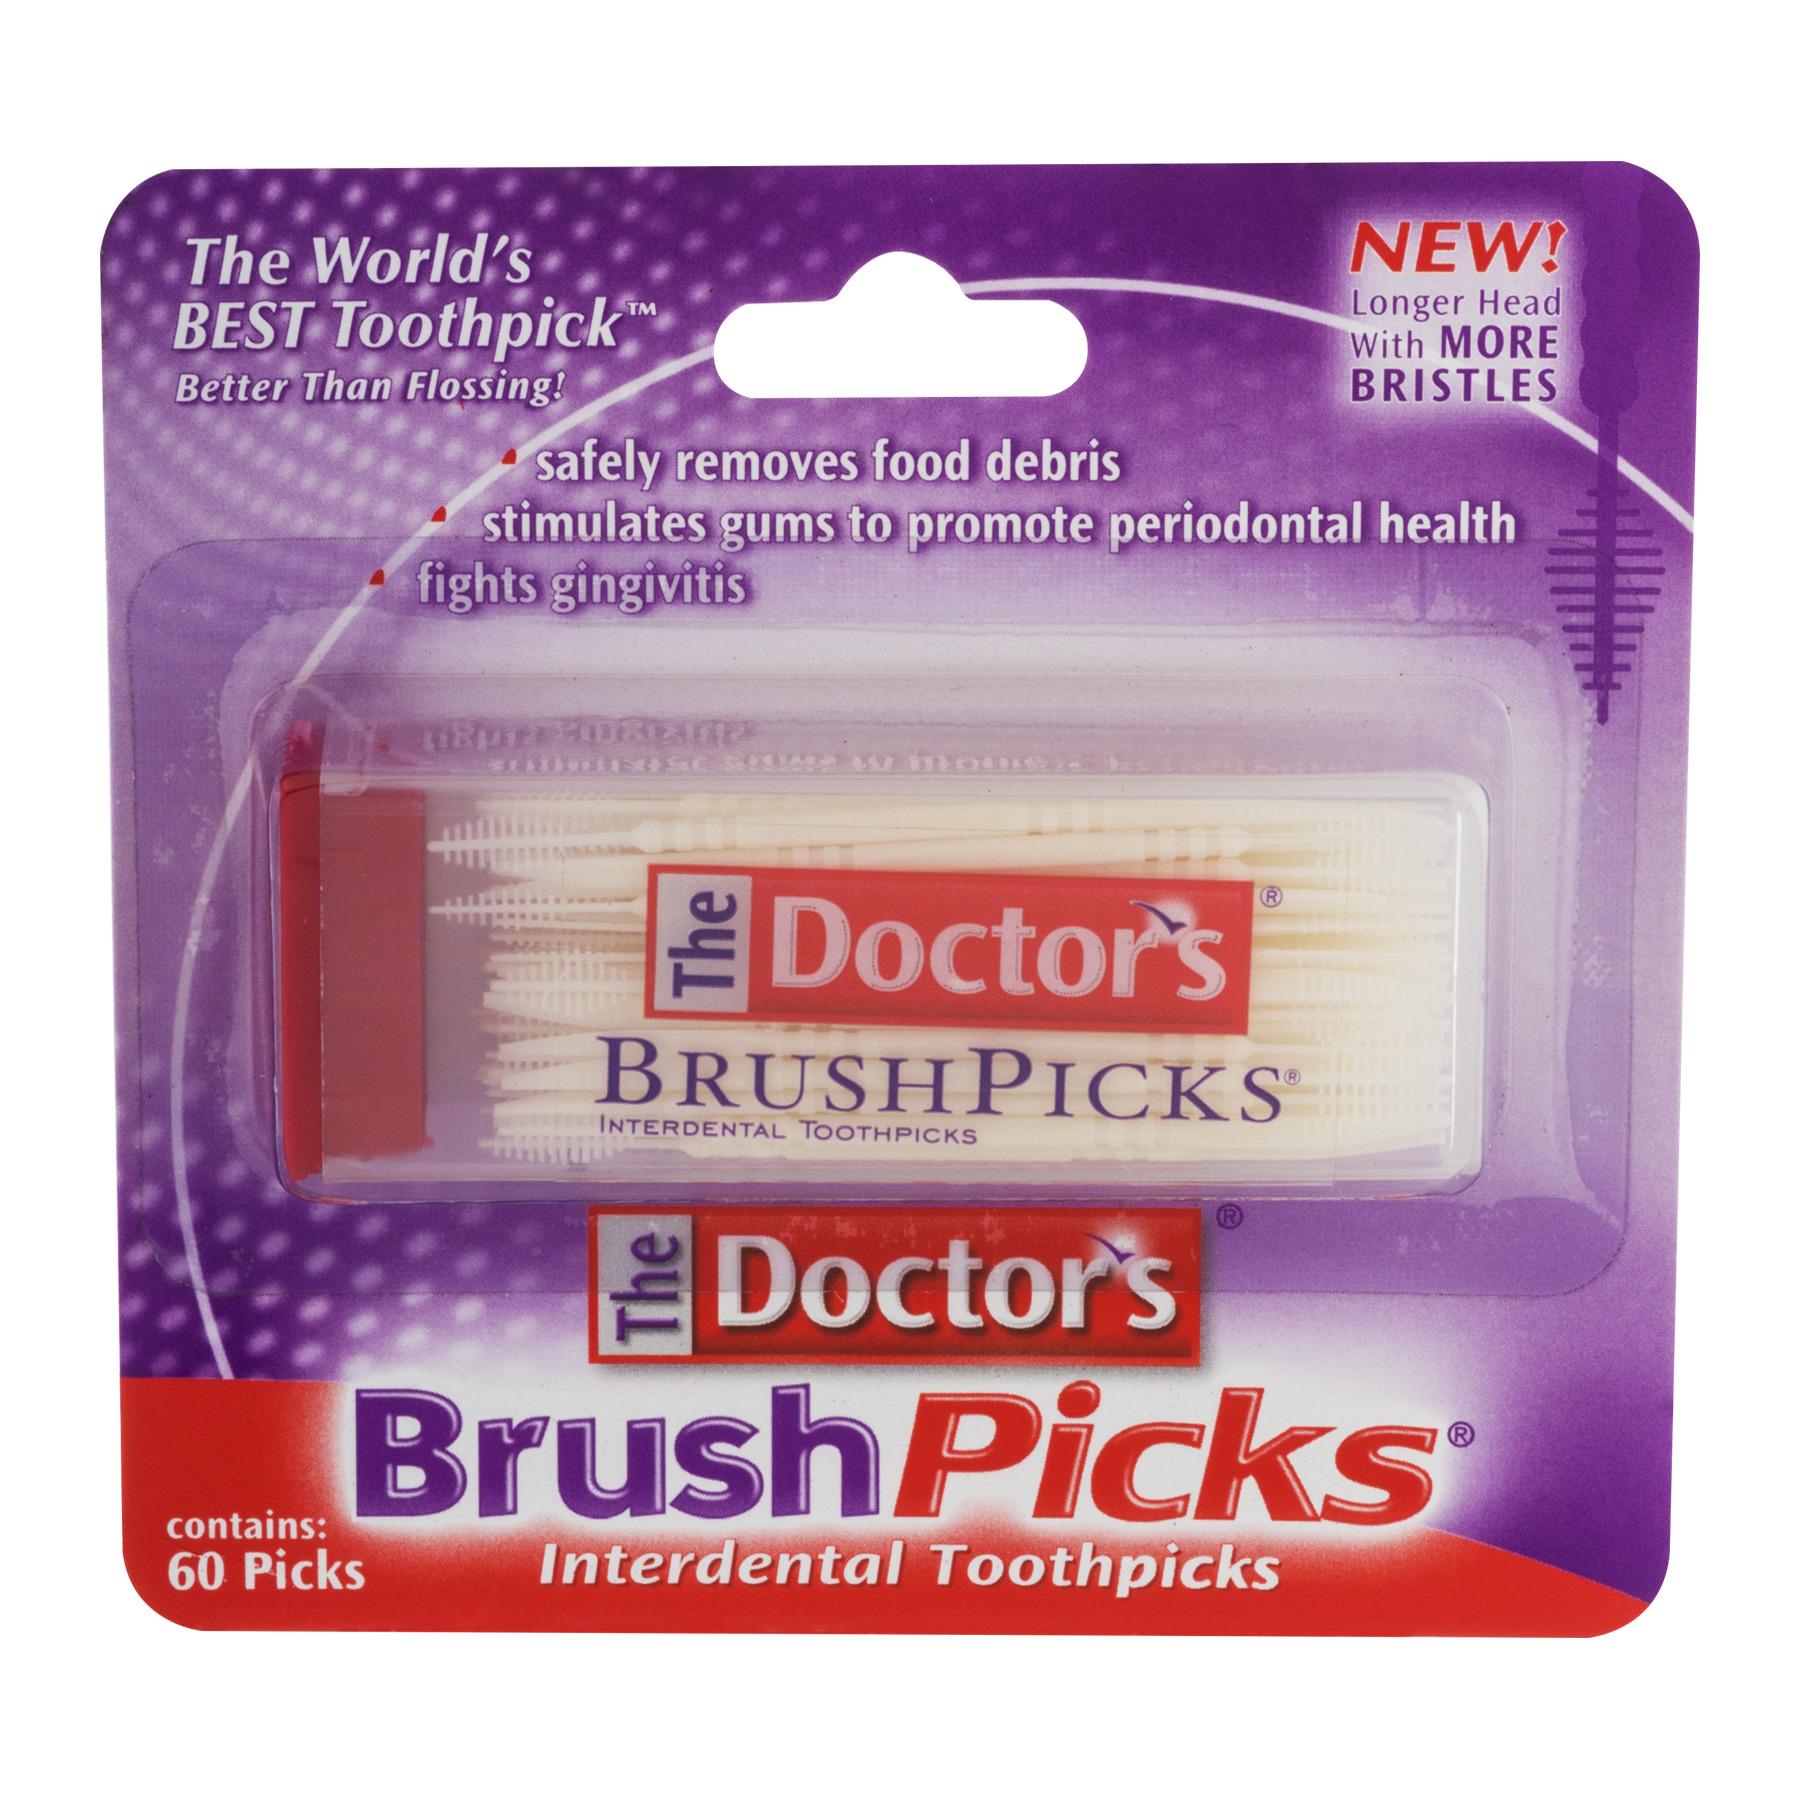 The Doctor's Brush Picks Interdental Toothpics - 60 CT60.0 CT